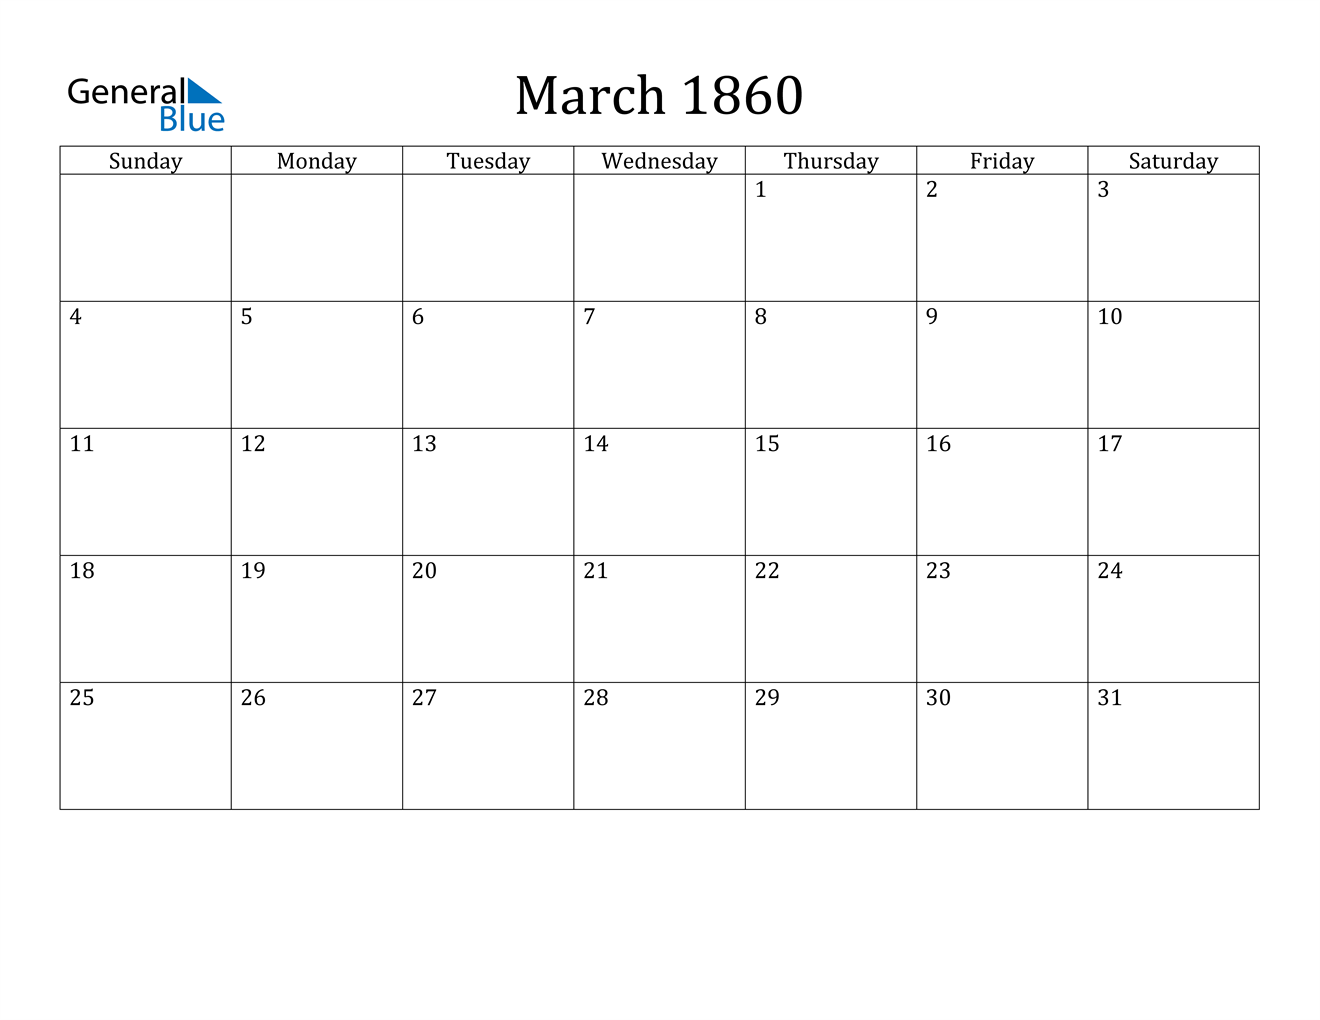 Image of March 1860 Calendar